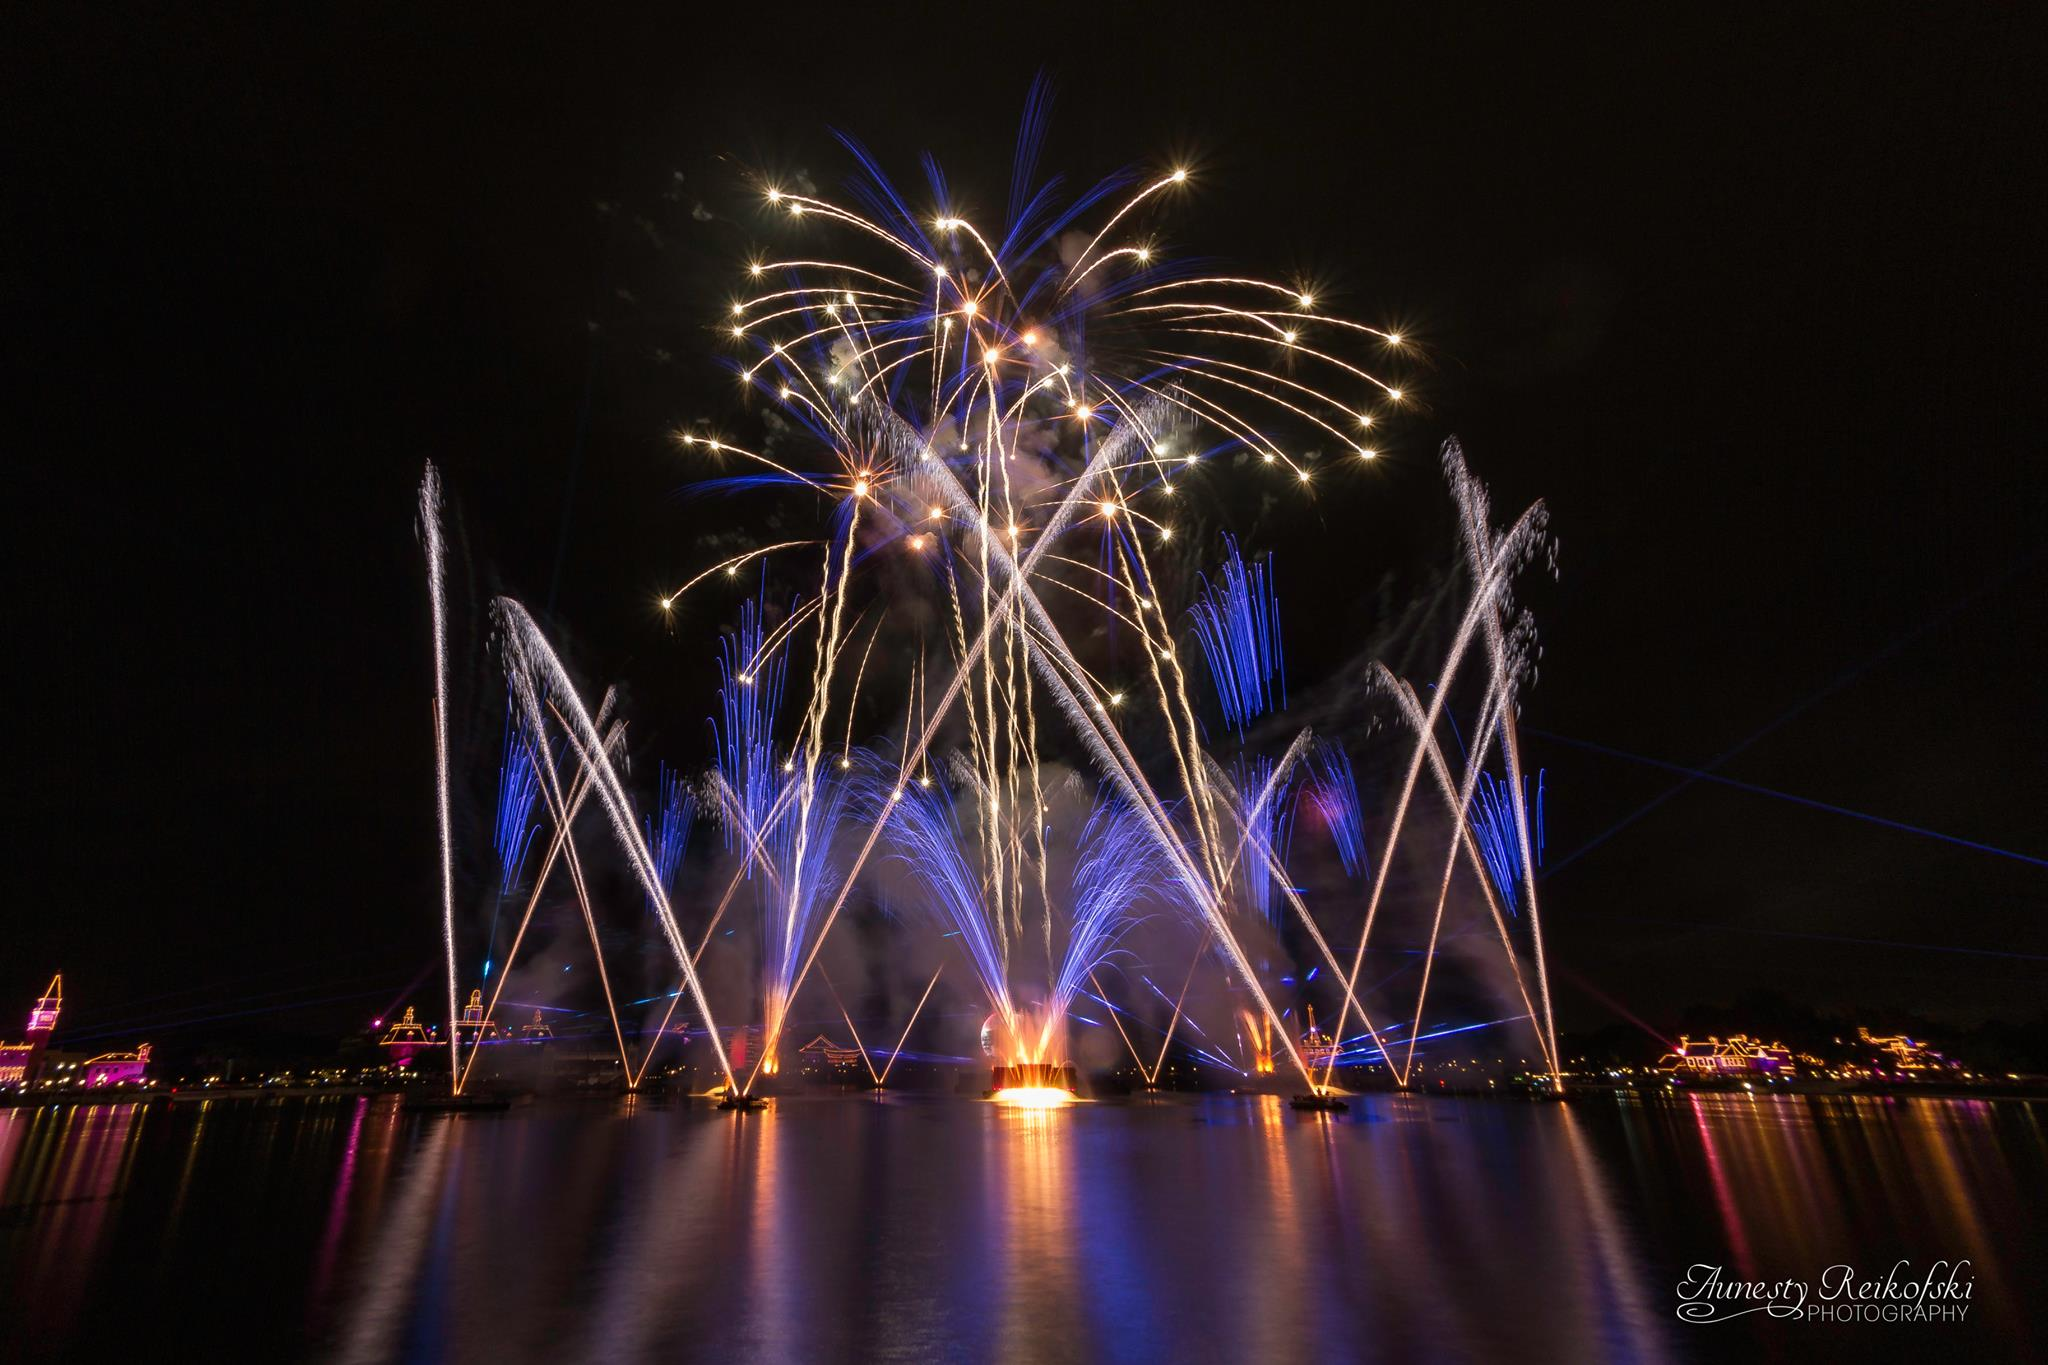 A lake at night with fountain going high into the air and multiple blue and white fireworks going off in the sky.